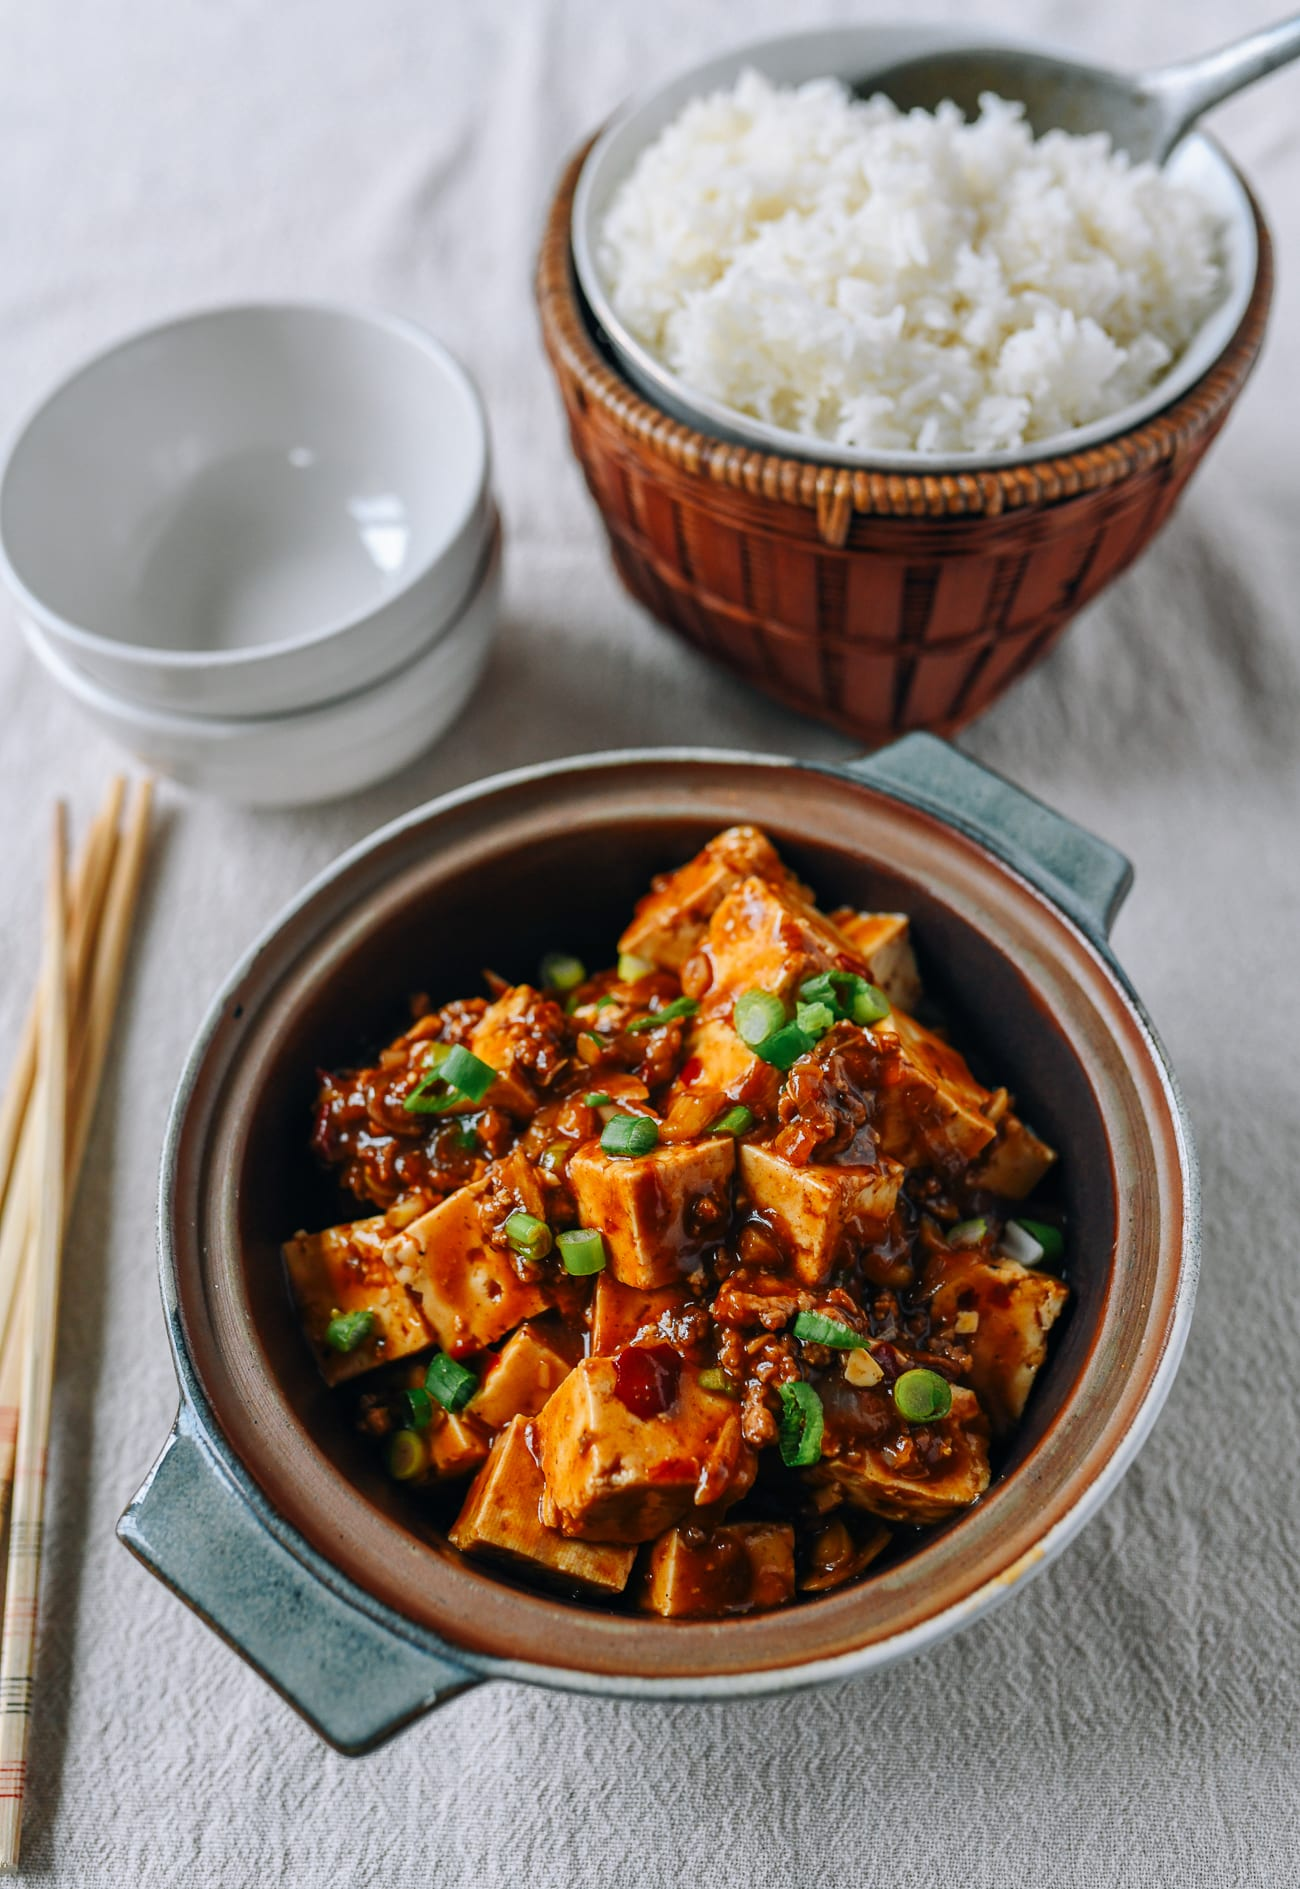 Spicy Garlic Tofu with steamed white rice